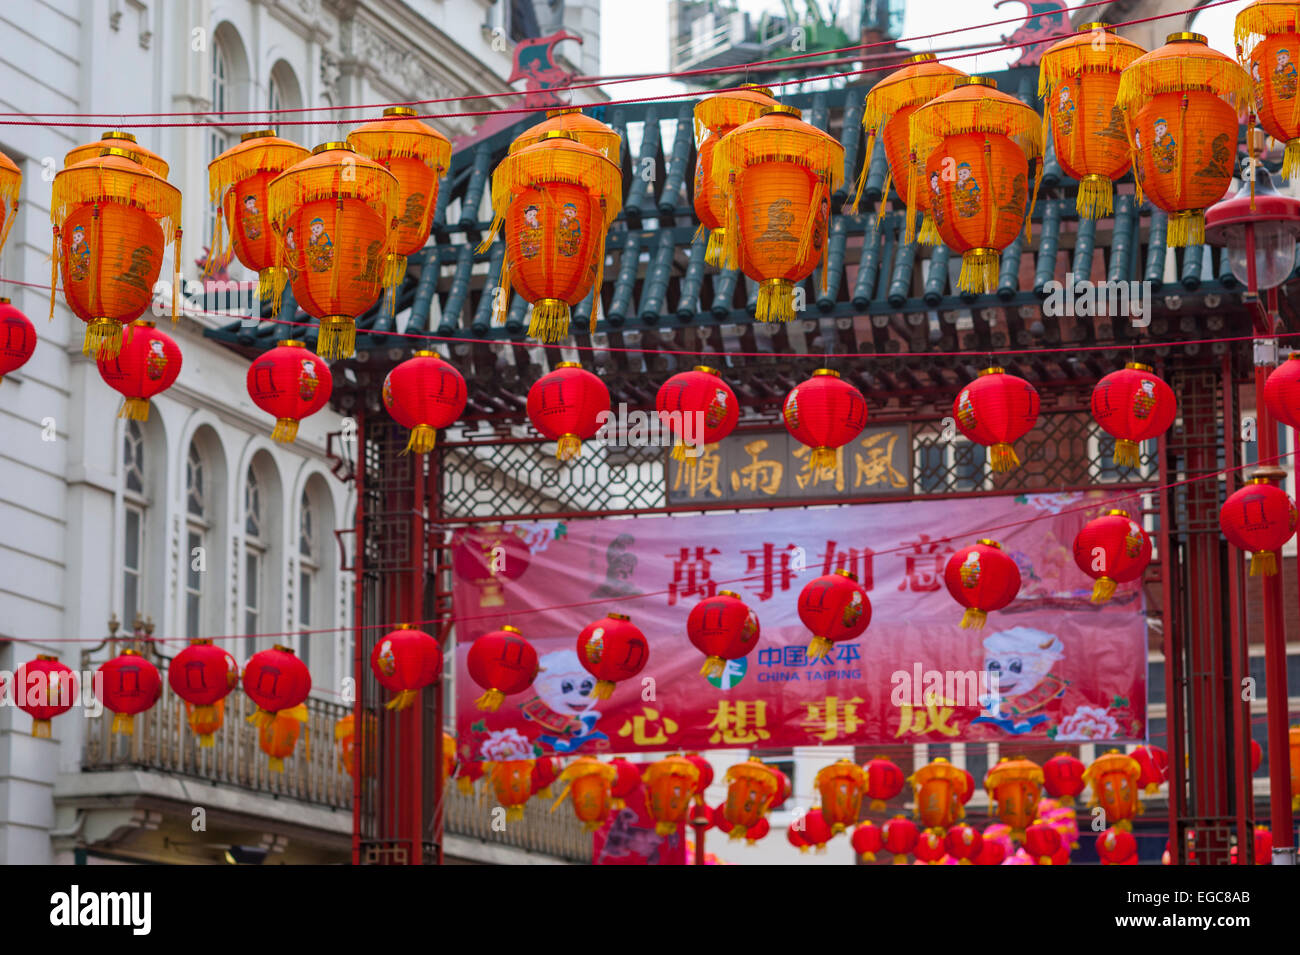 Lanterns in China town London fror new year celebrations. Stock Photo